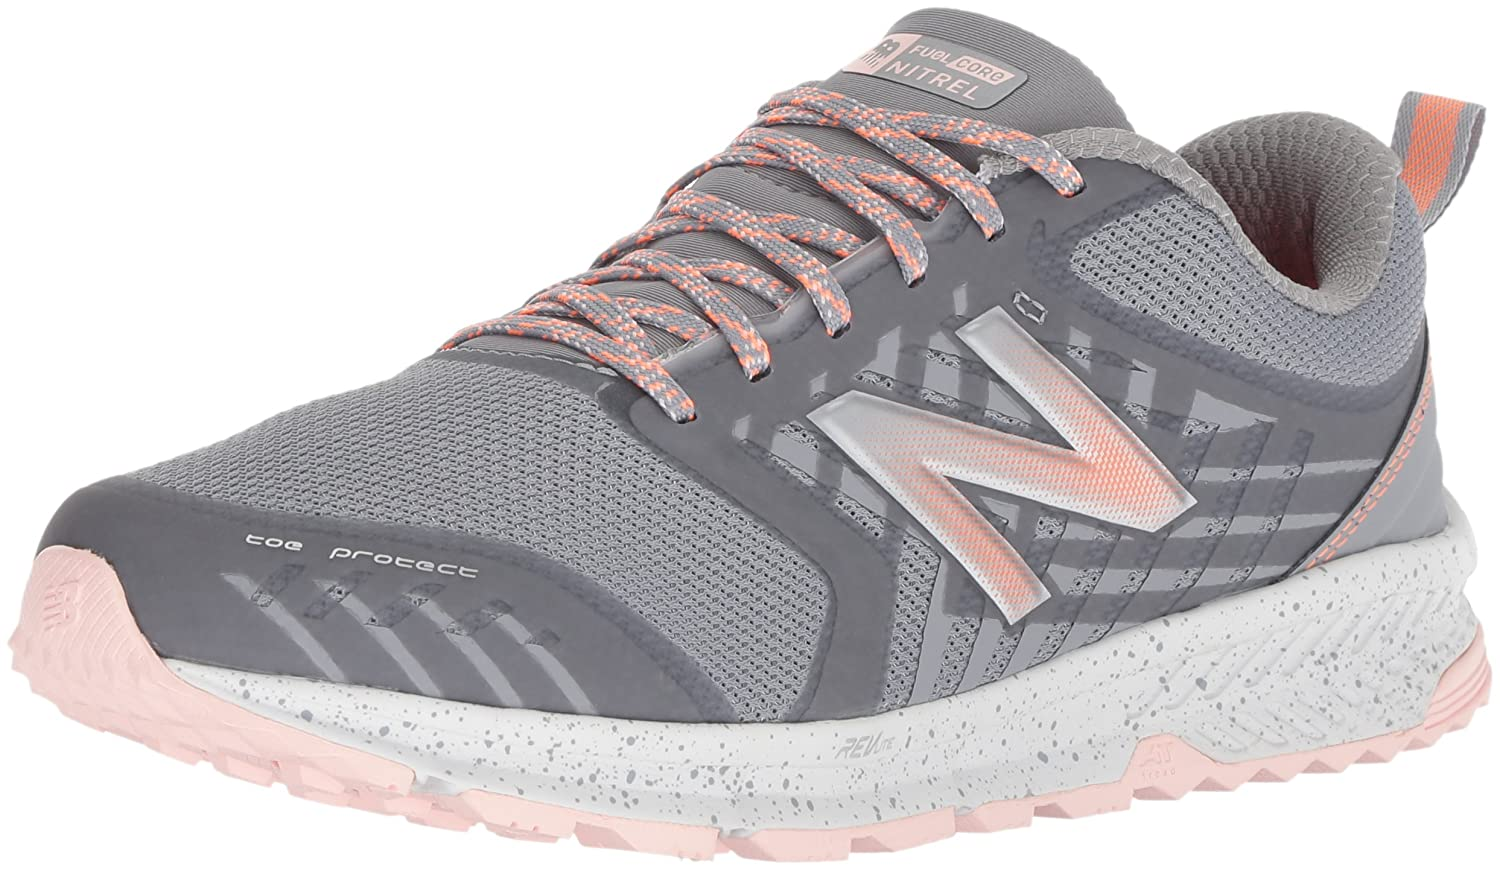 New Balance Women's Nitrel v1 FuelCore Trail Running Shoe B072JTQK8P 7.5 D US|Grey